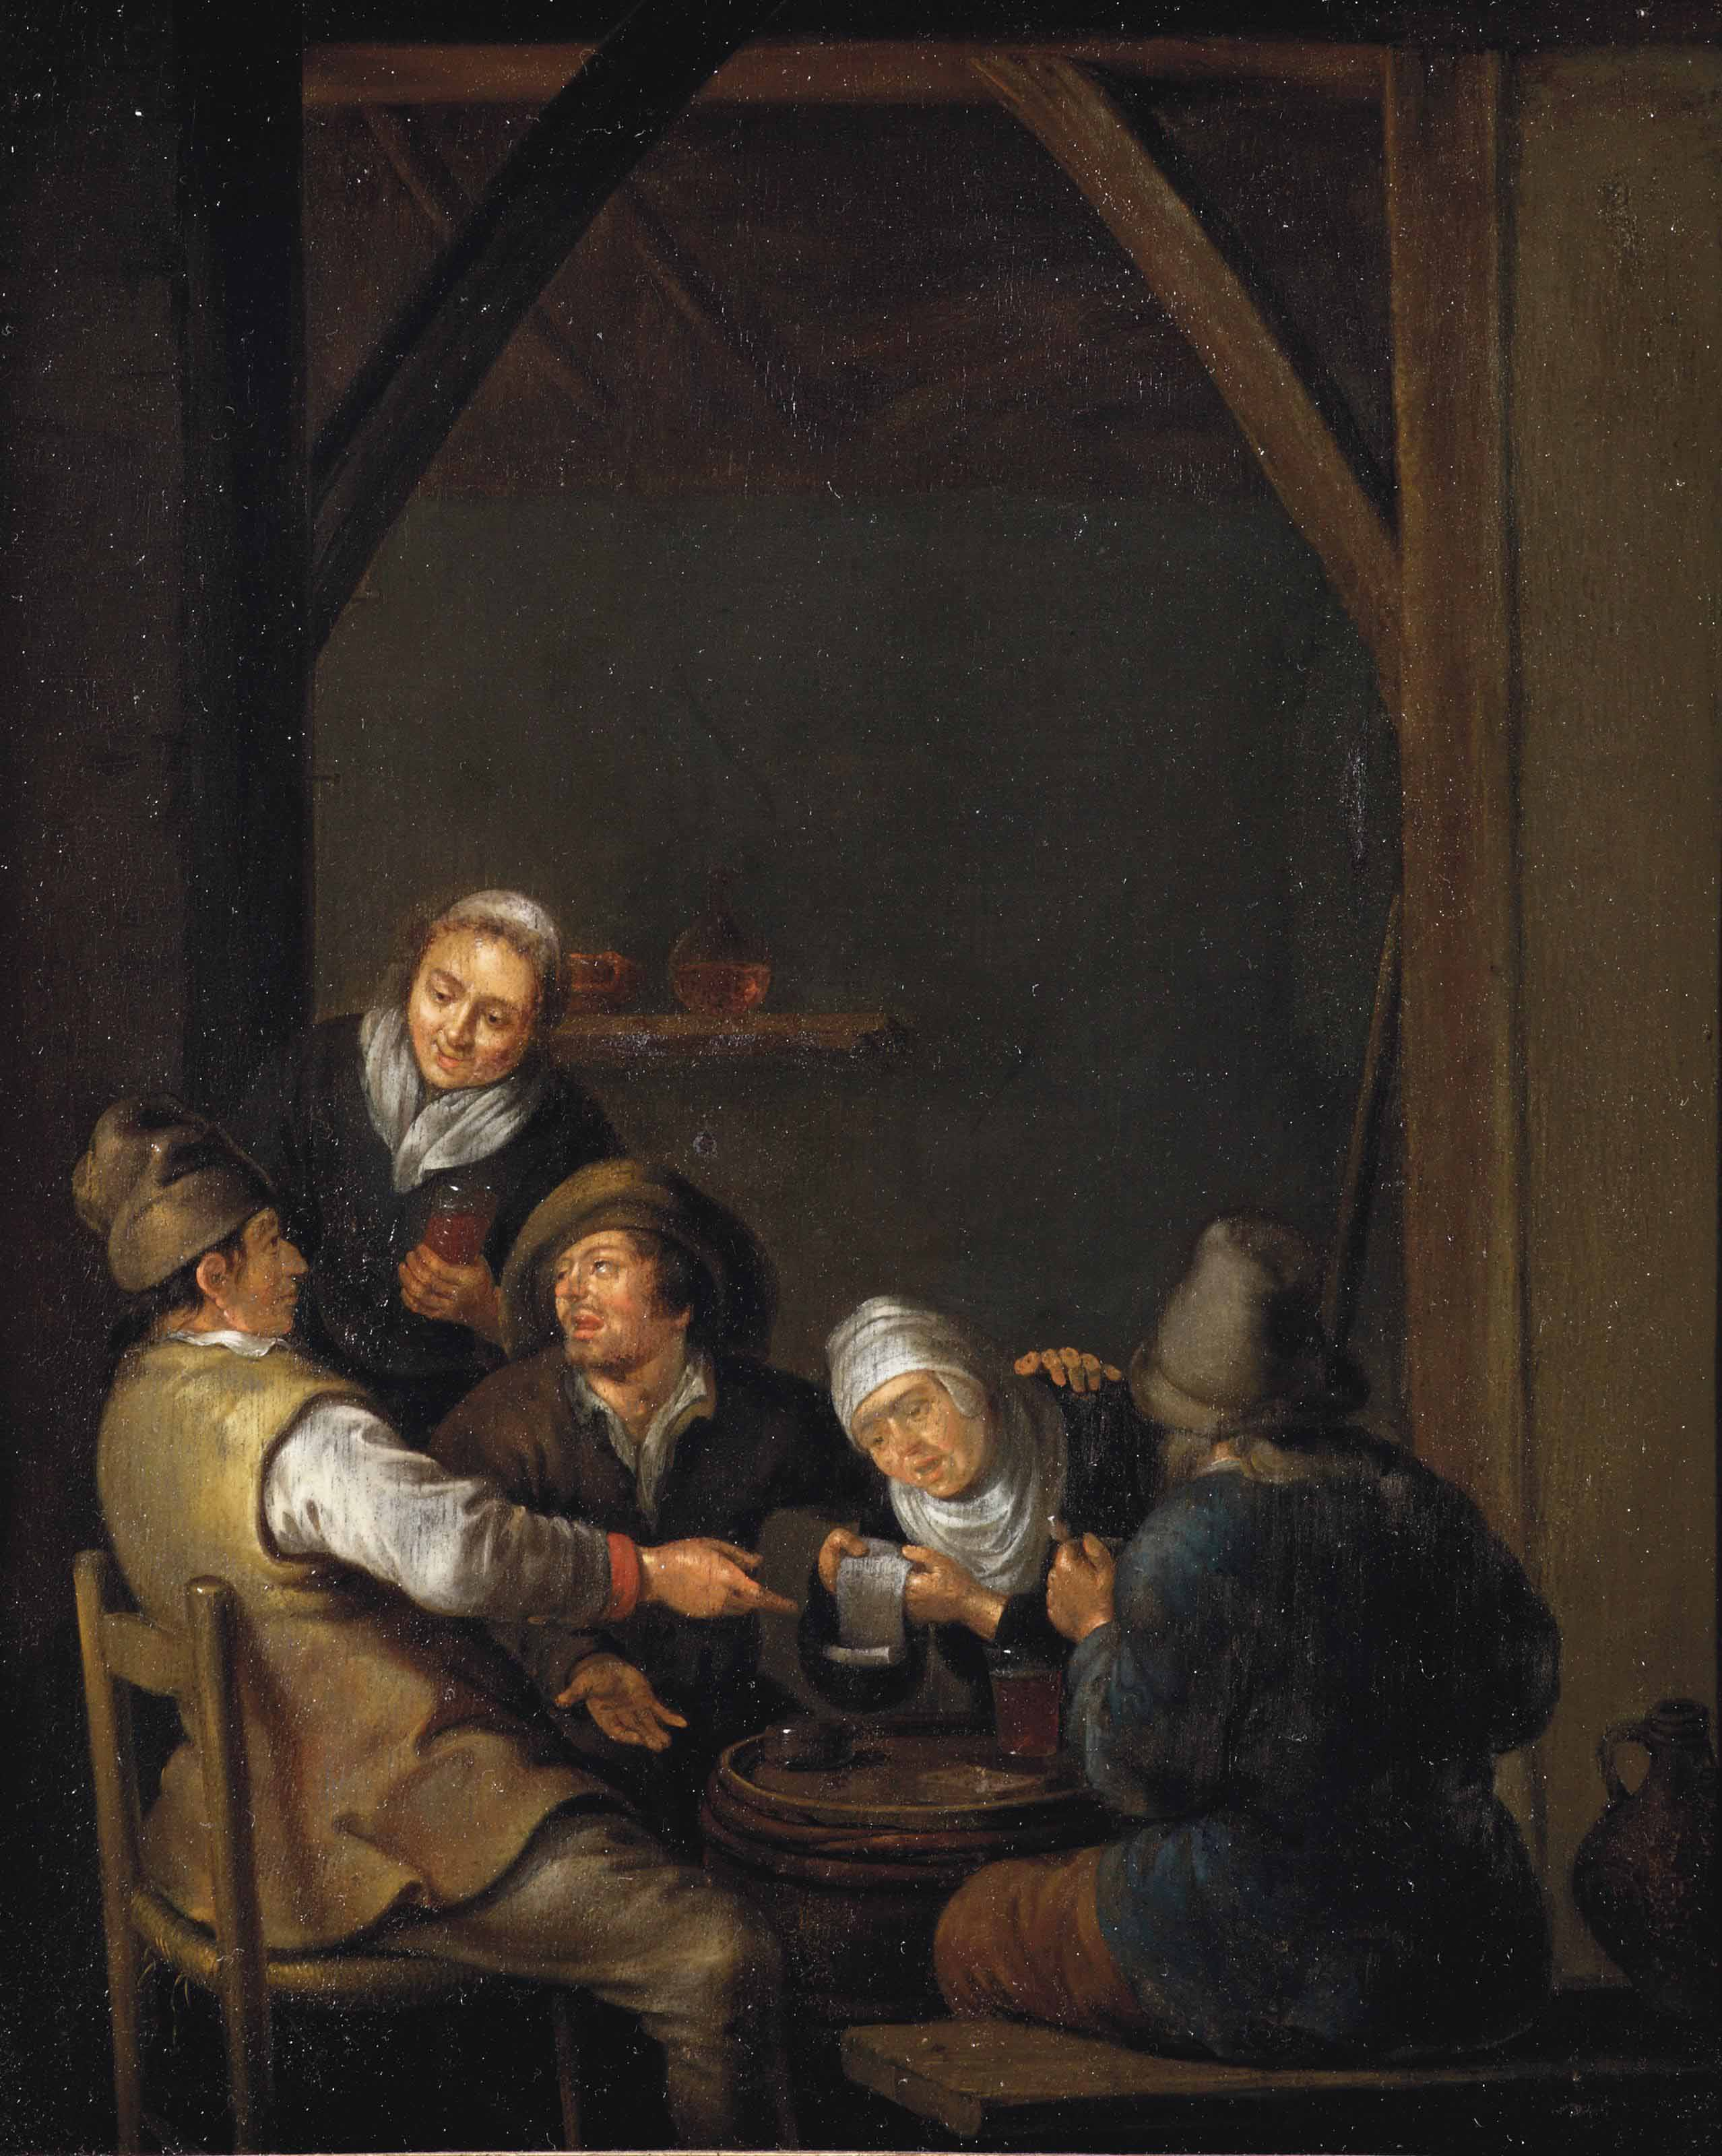 Peasants drinking in an interior